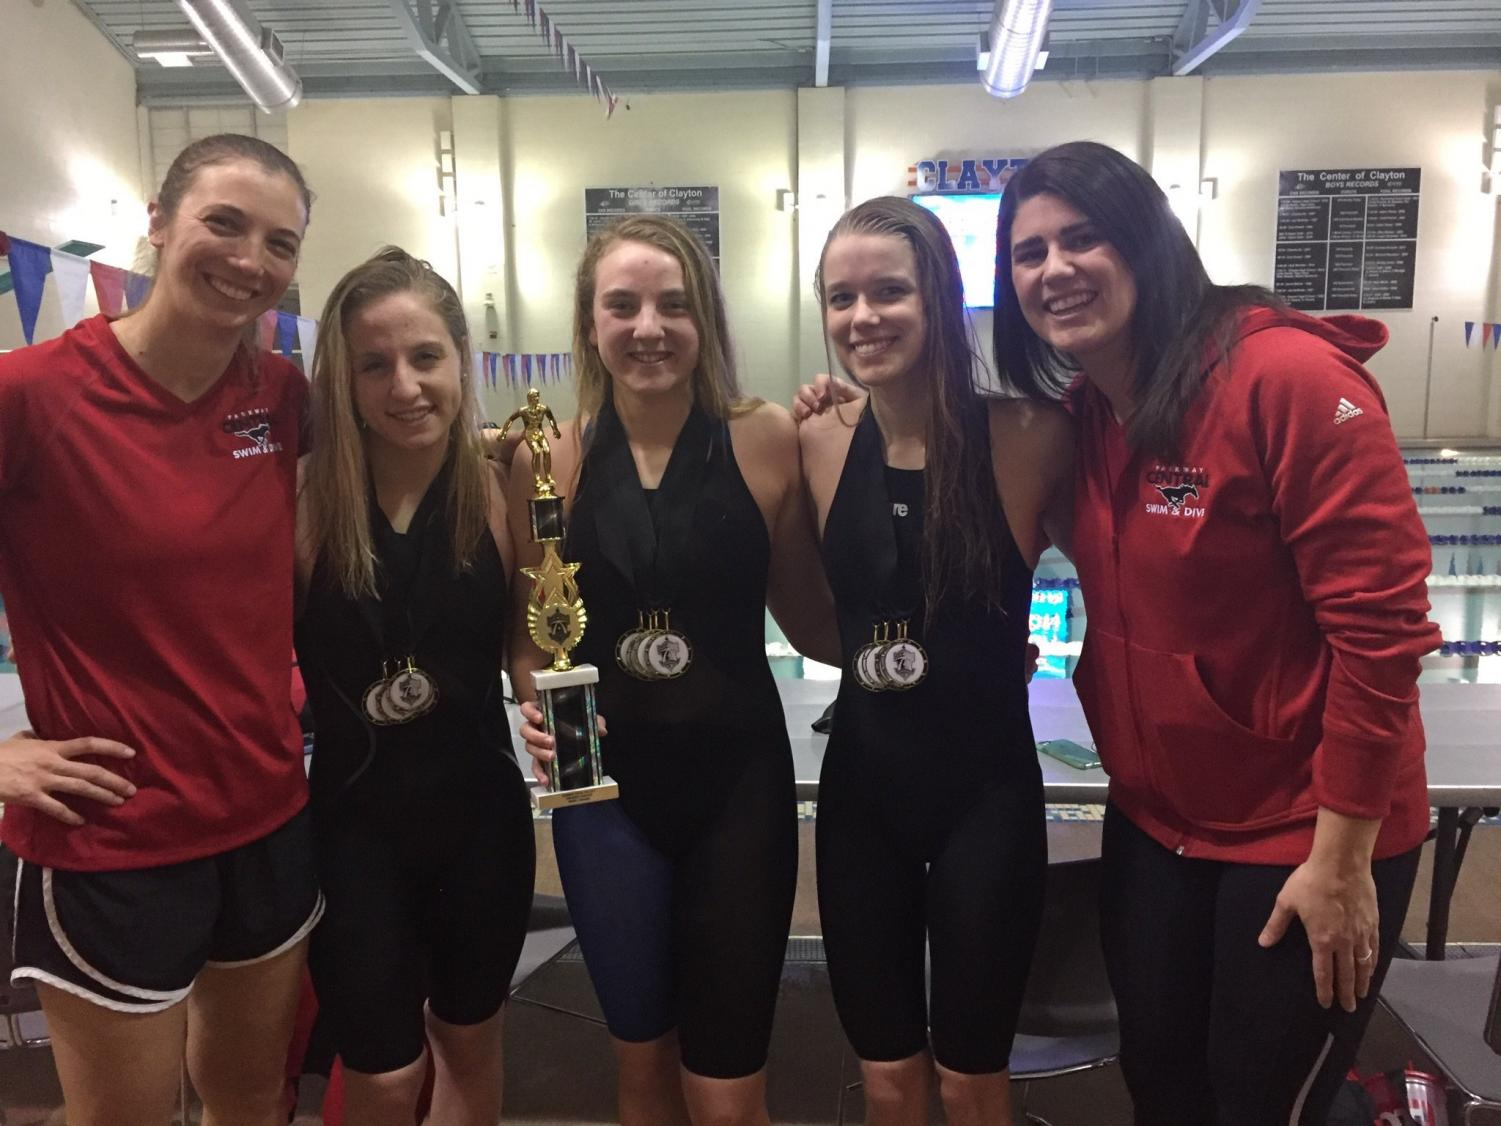 Former Head Coach Meyer and current Head Coach Seidel pose with former Parkway Central swimmers, Madison, Alexis Poe, and Annika Hofer. Photo courtesy of Jennifer Meyer